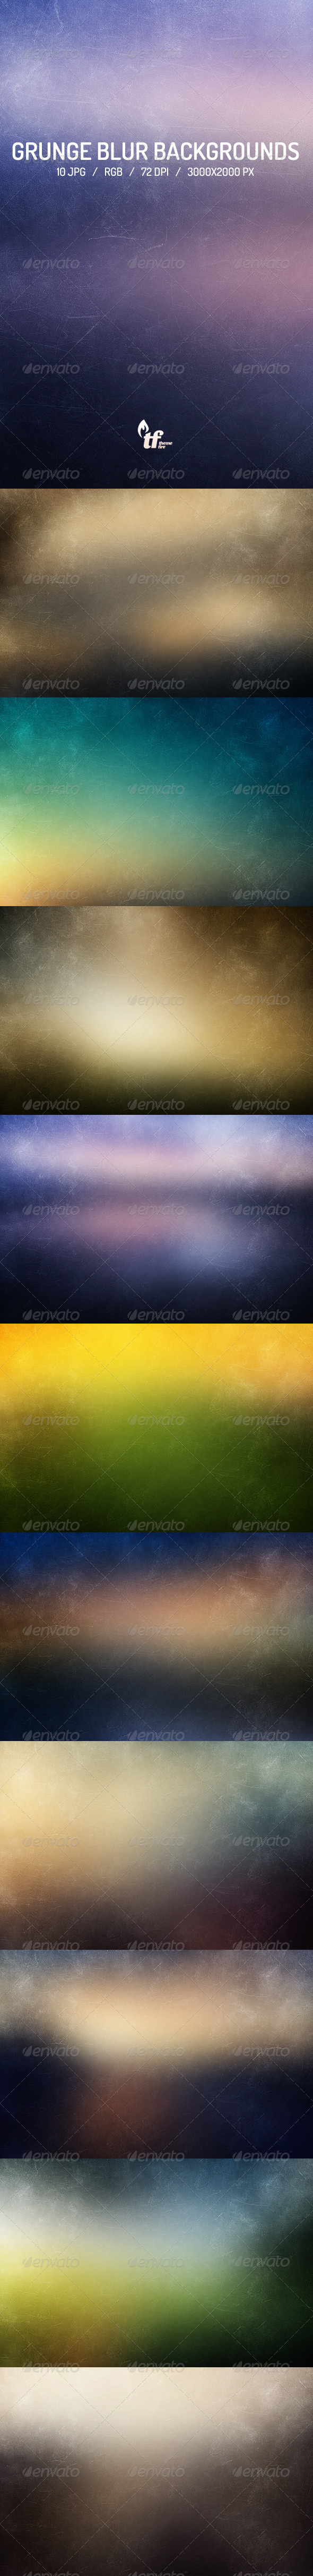 GraphicRiver 10 Grunge Blur Backgrounds 7797608